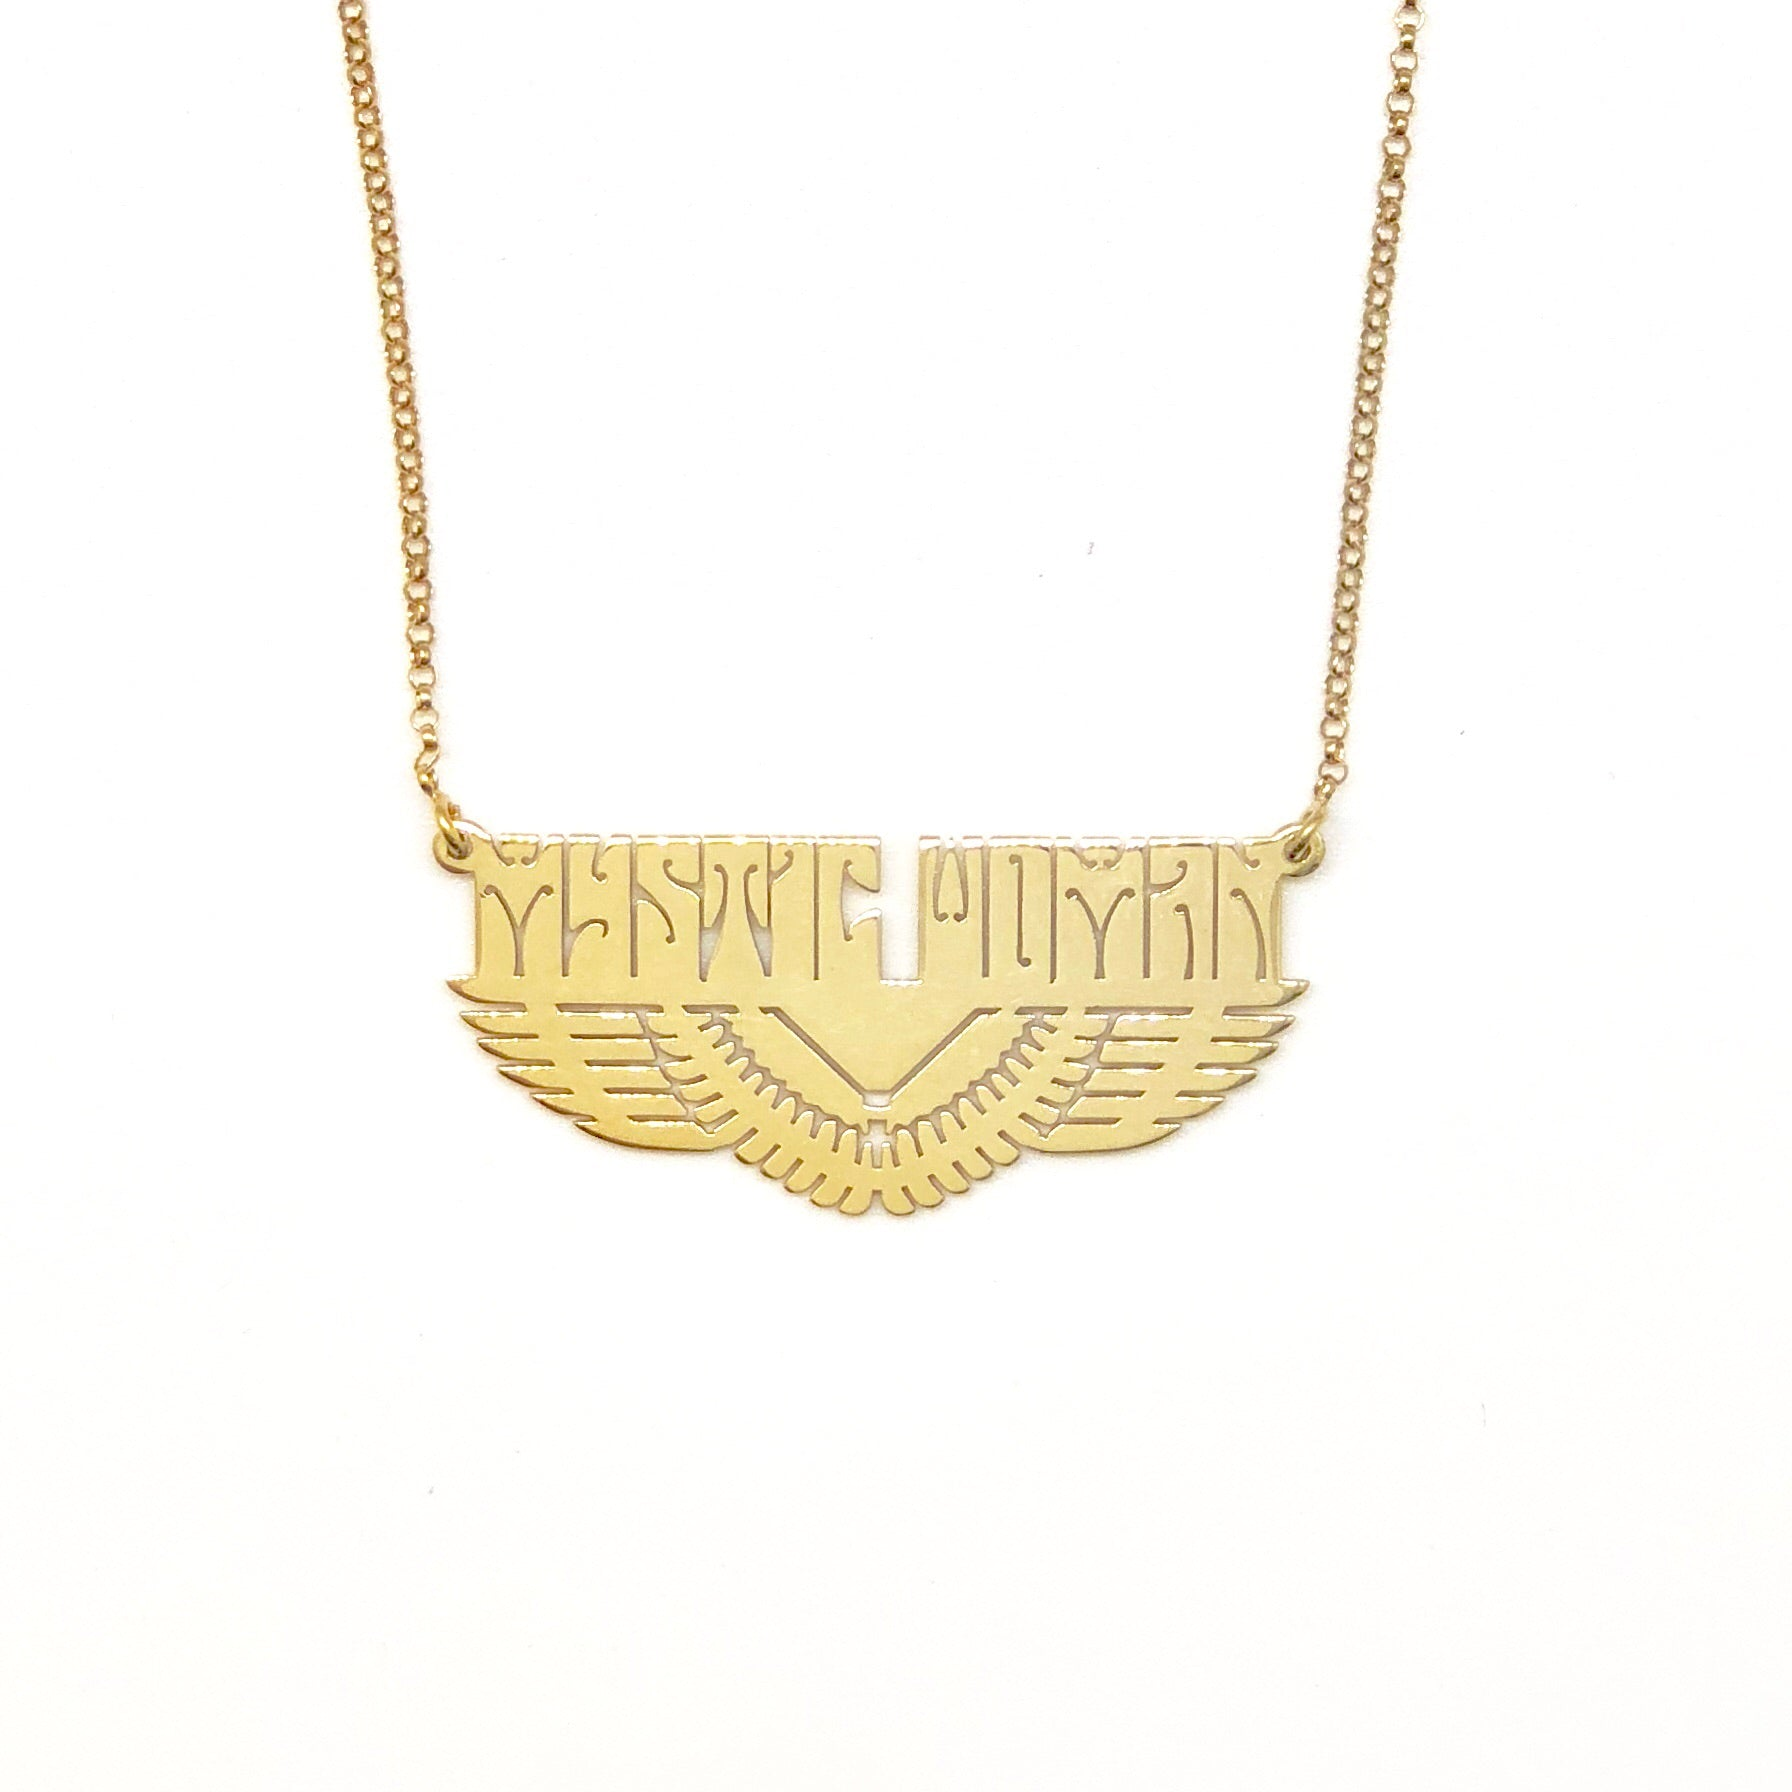 MYSTIC WOMAN™ RISING PHOENIX PENDANT NECKLACE